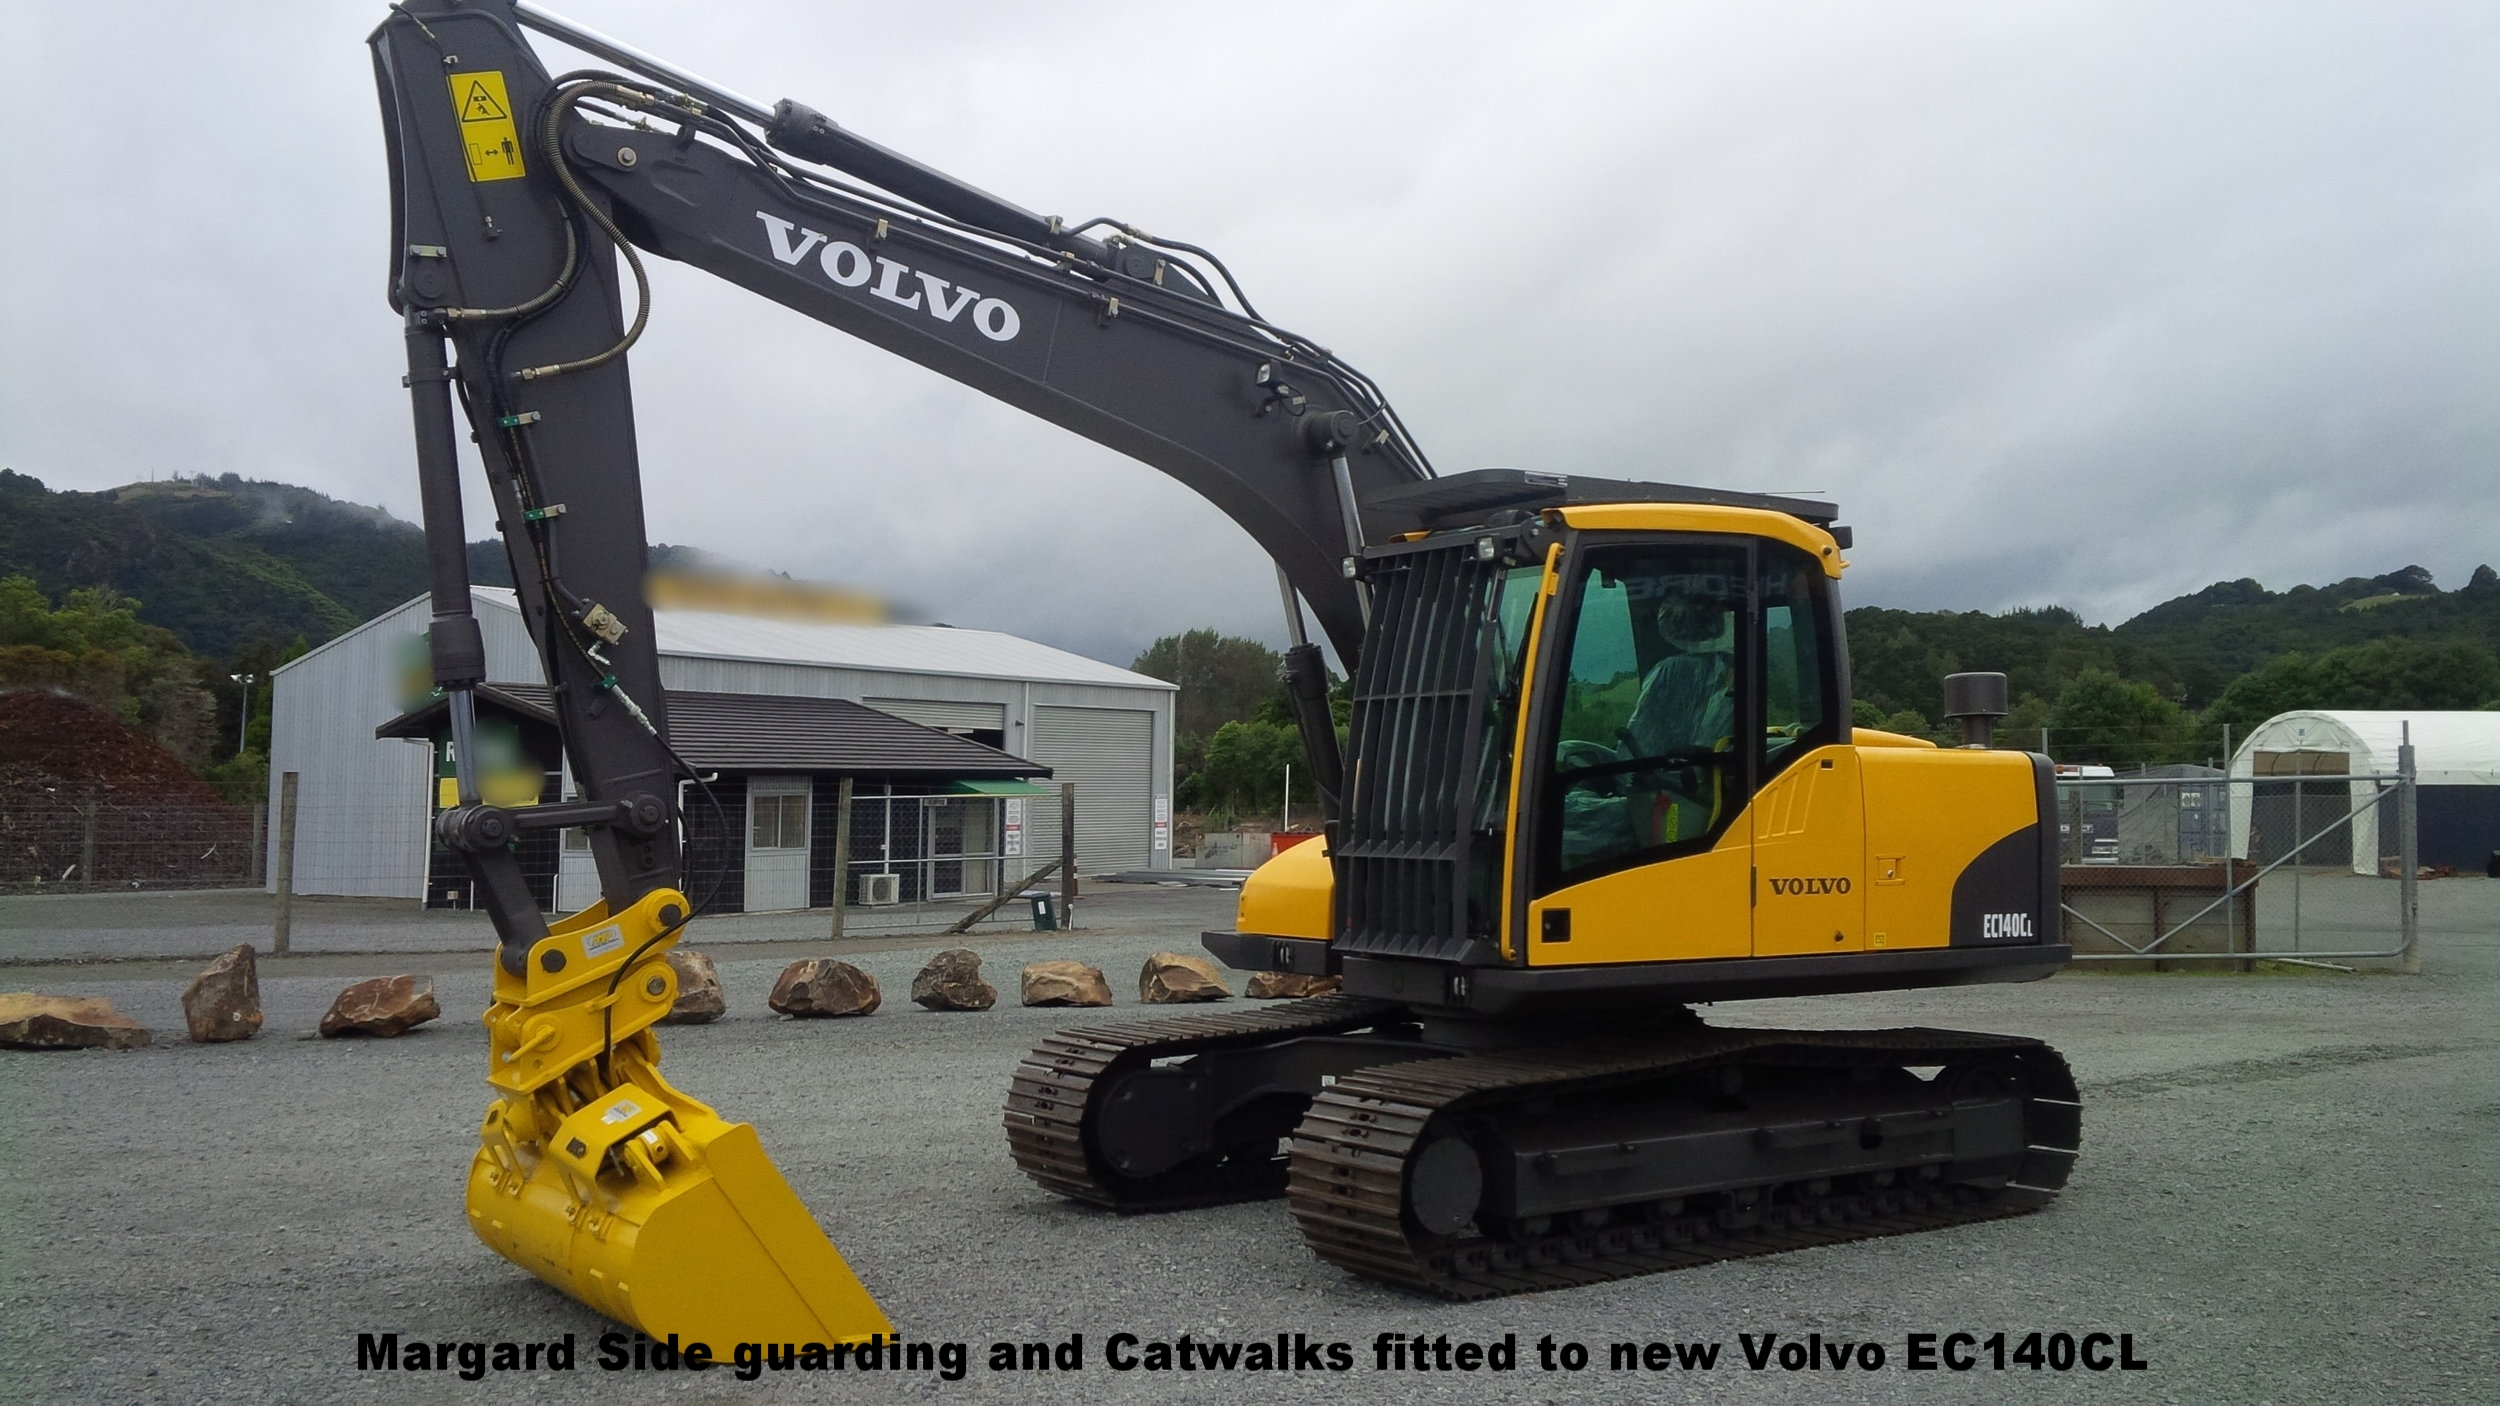 Catwalks, Marguard windows, NSP hitch & tilt bucket - fitted to new Volvo EC140CL